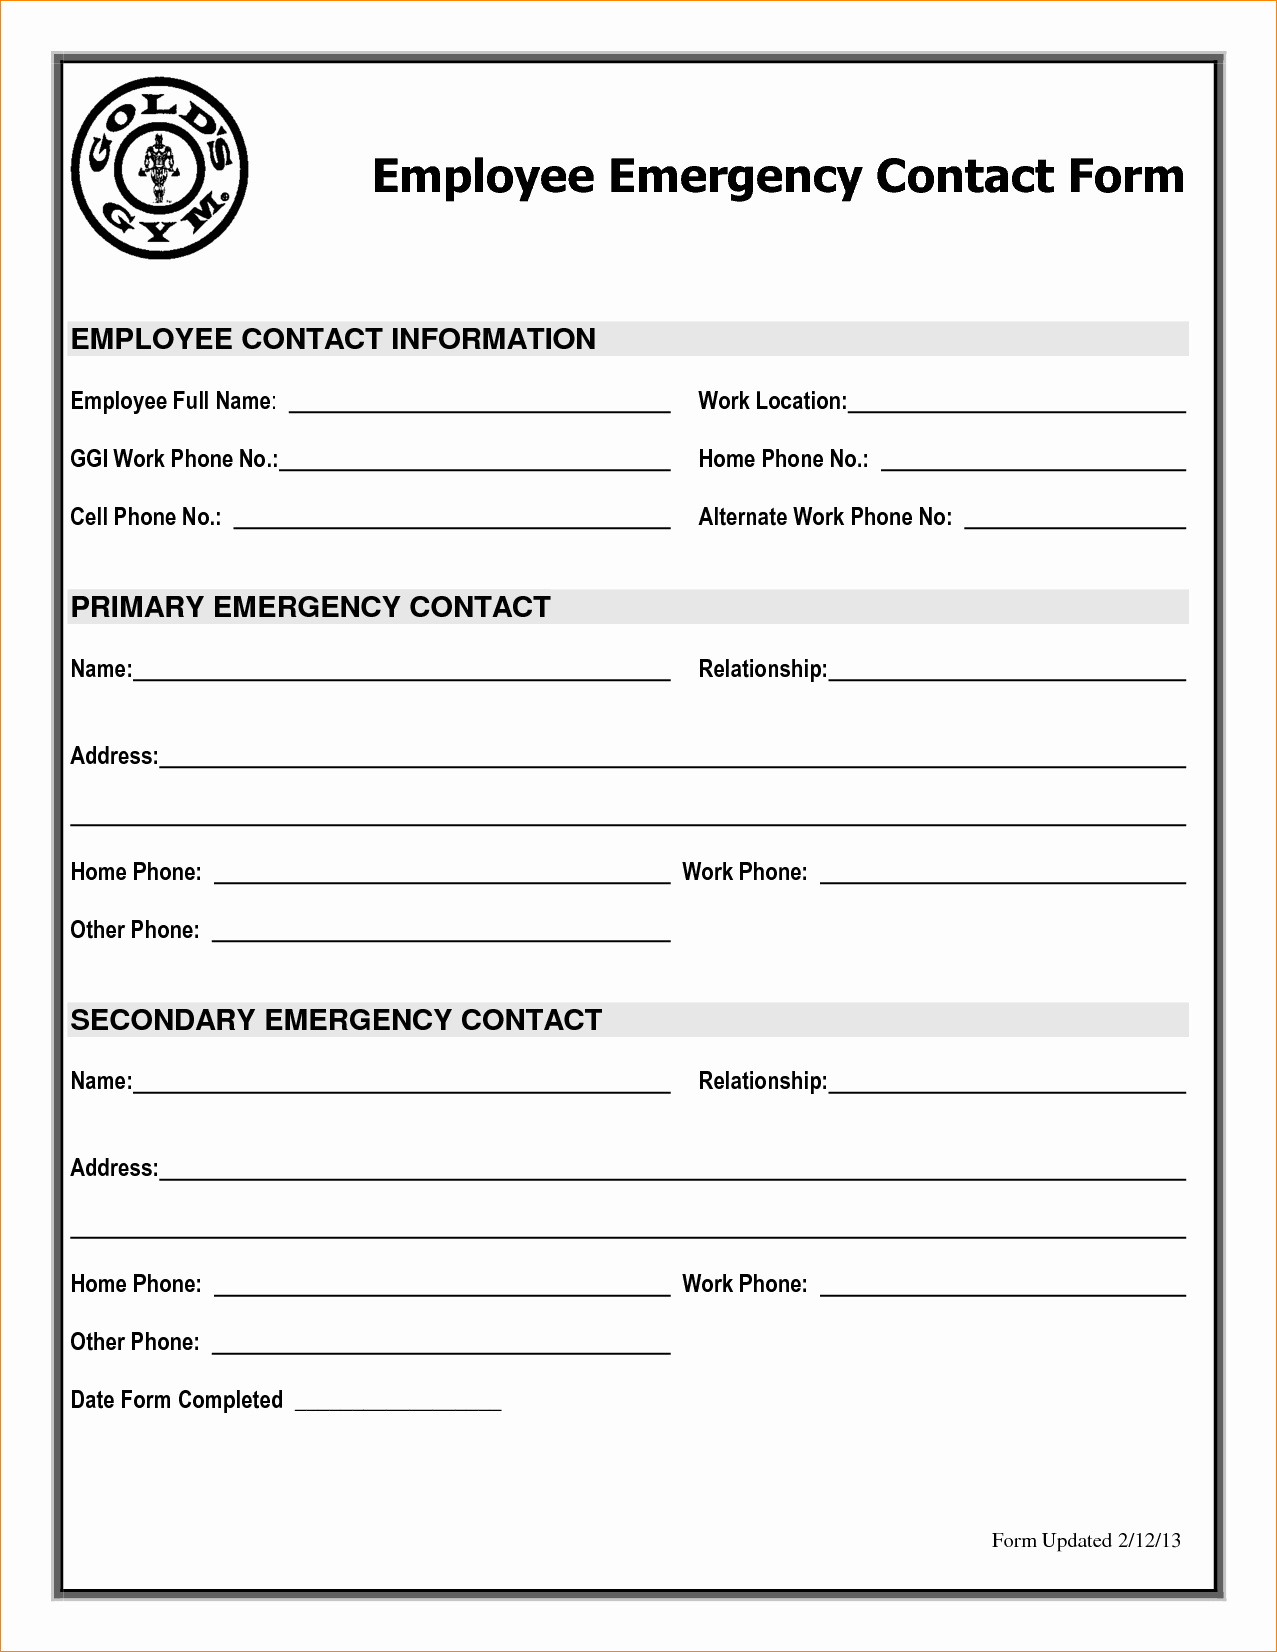 Employee Contact List Template Inspirational Employee Emergency Contact Printable form to Pin